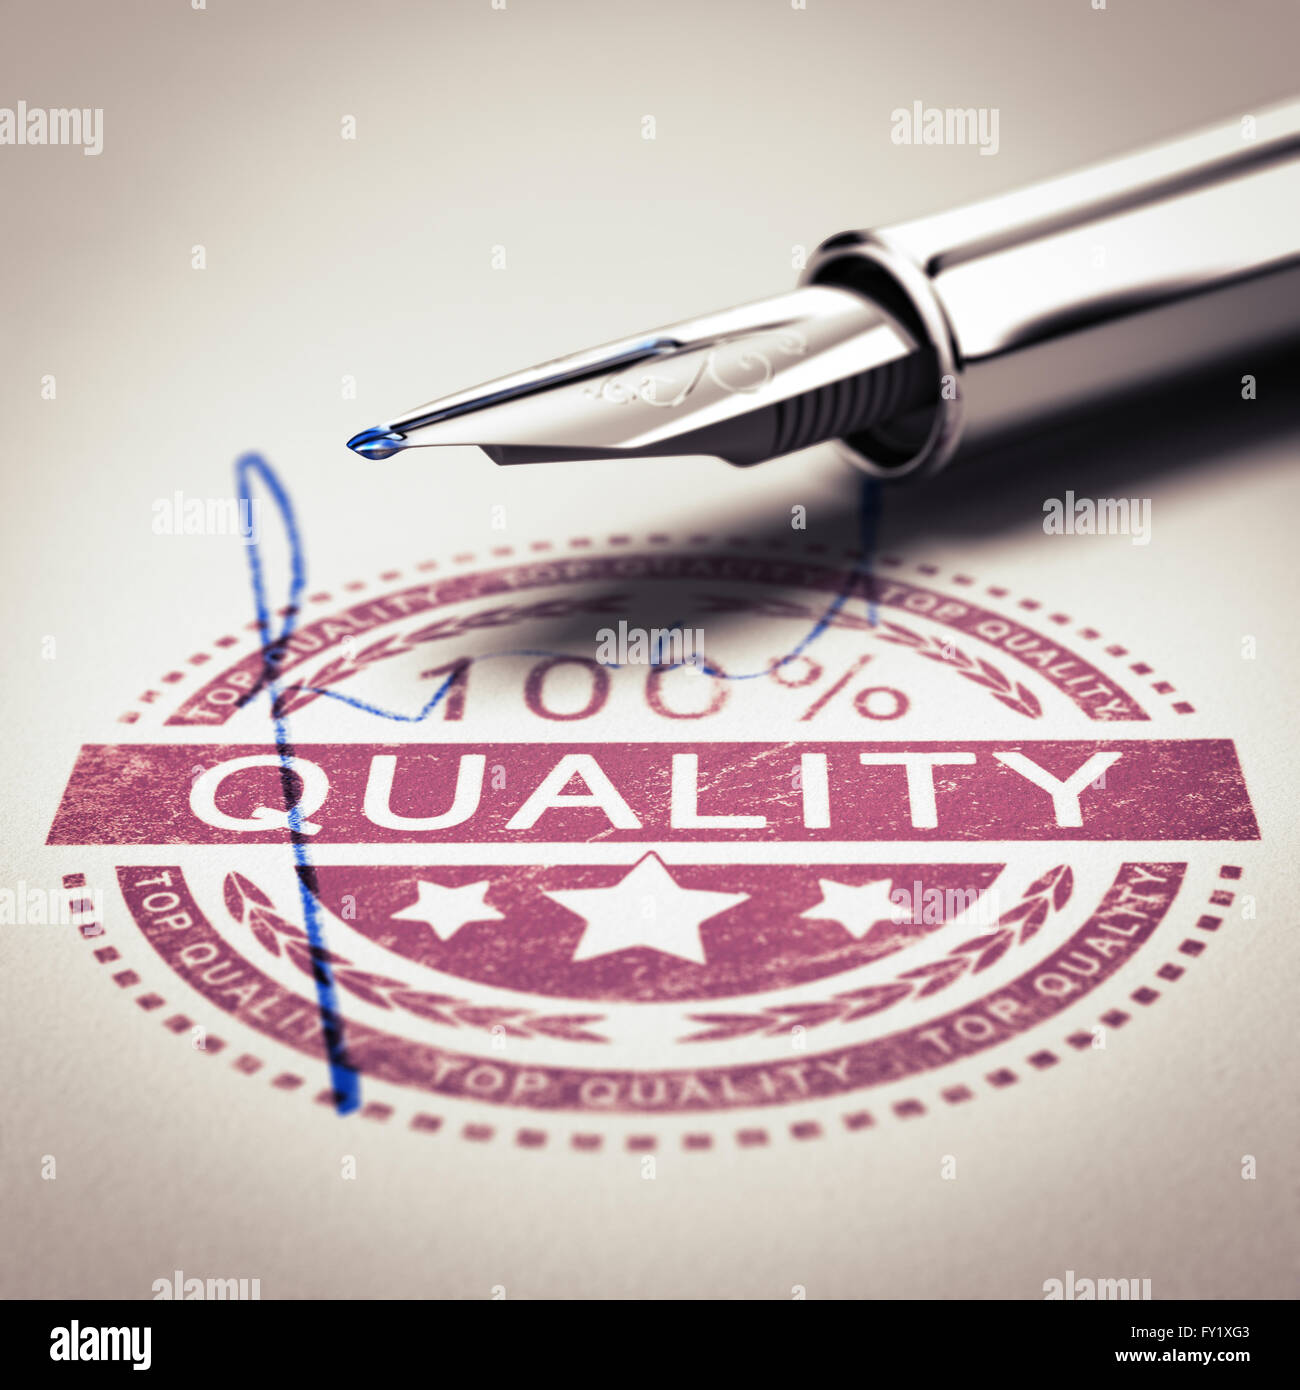 100 percent quality guarantee rubber stamp mark imprinted on a paper texture with signature and fountain pen. Concept - Stock Image